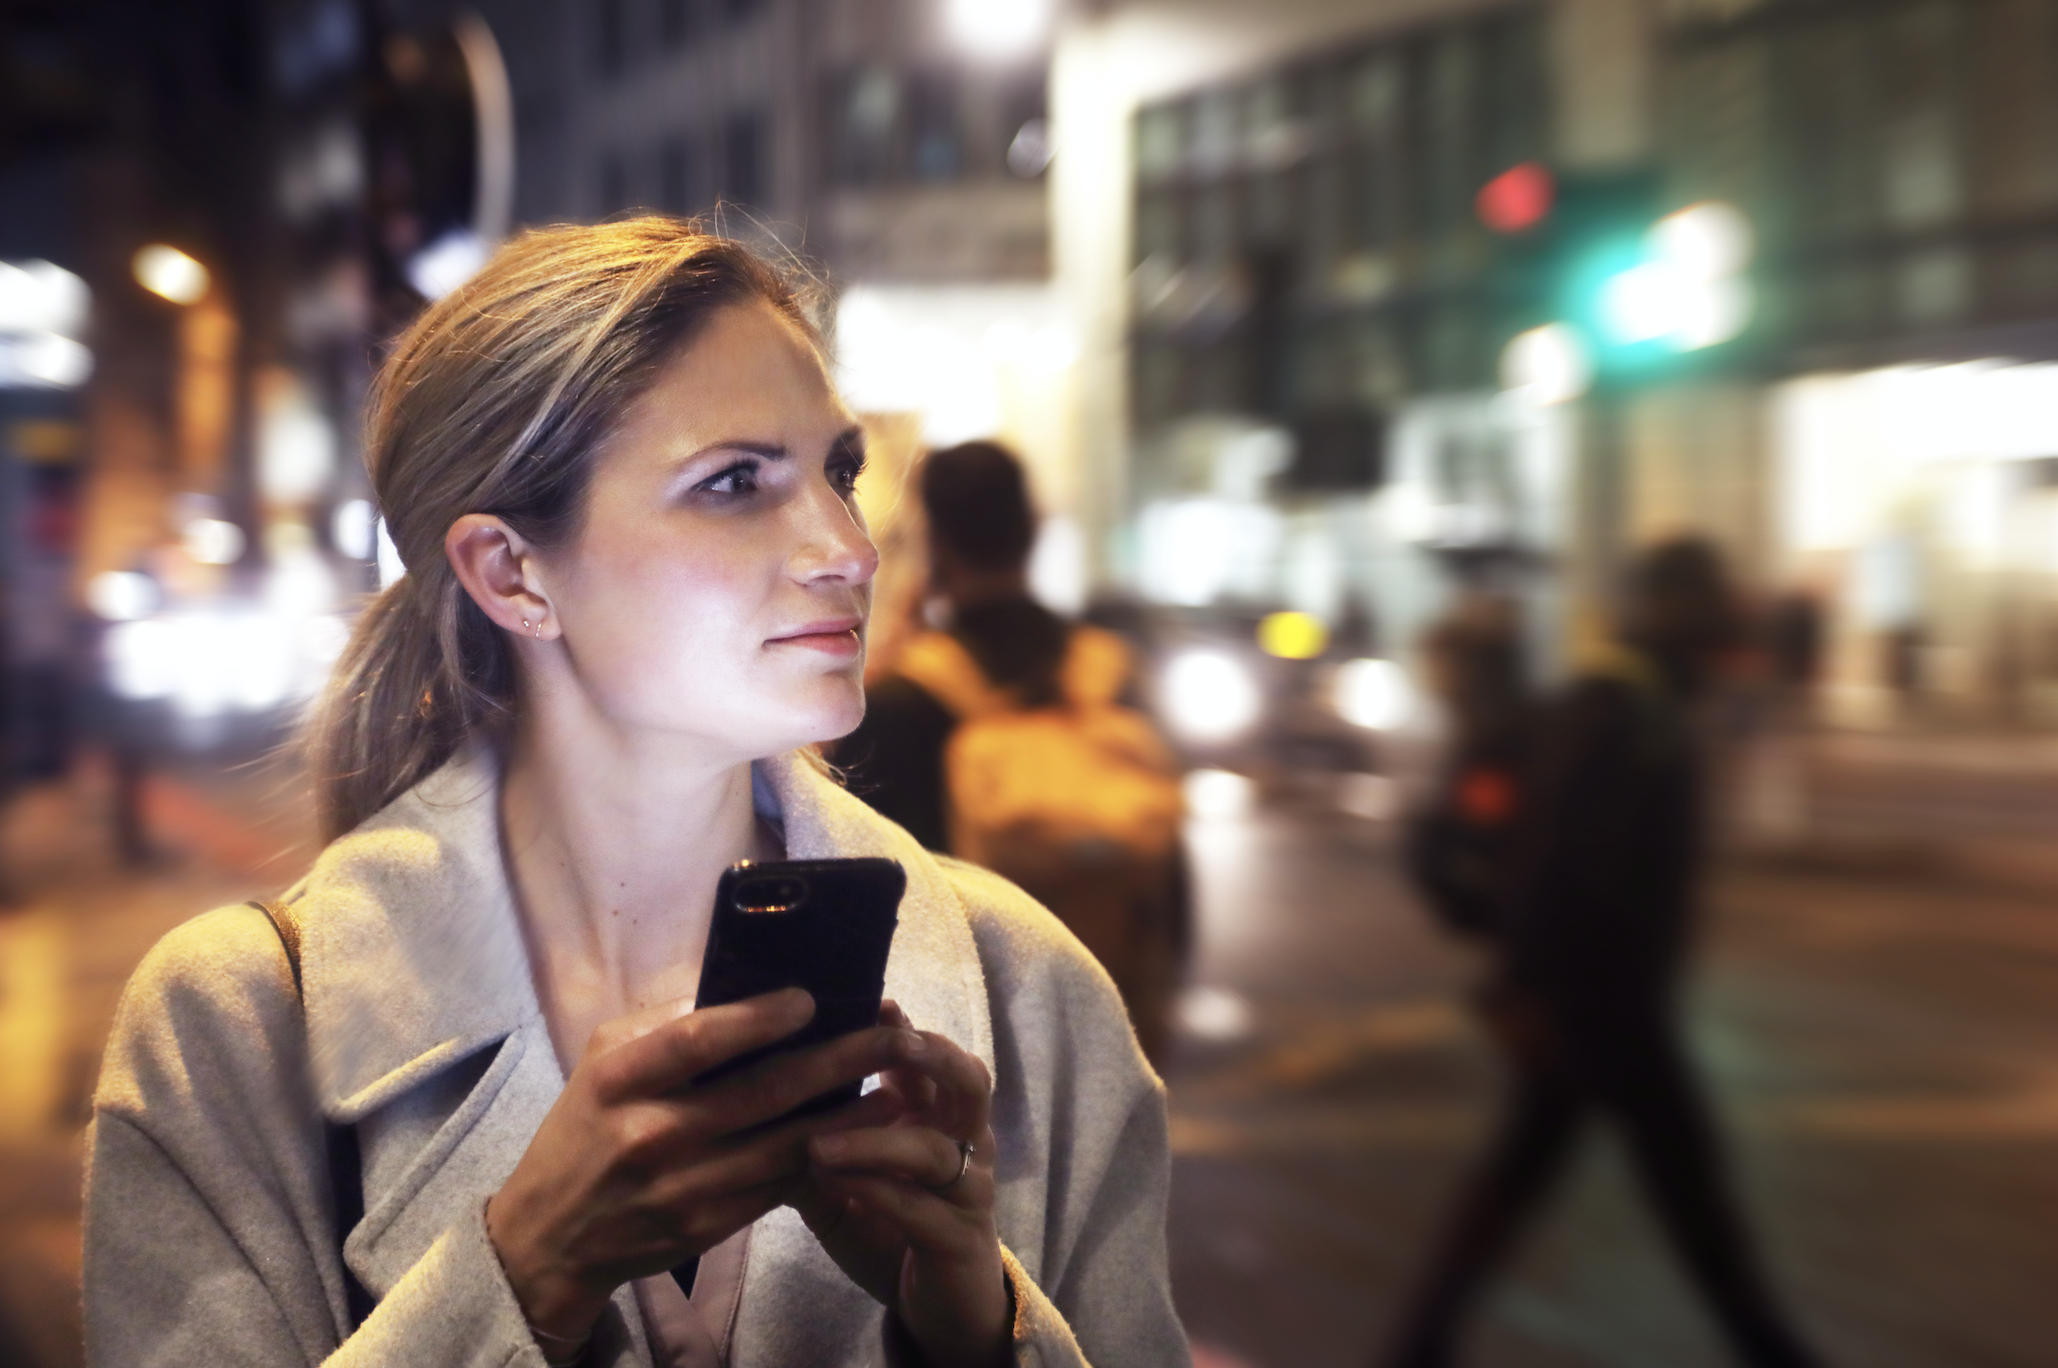 A woman receiving a text and making an uncomfortable face